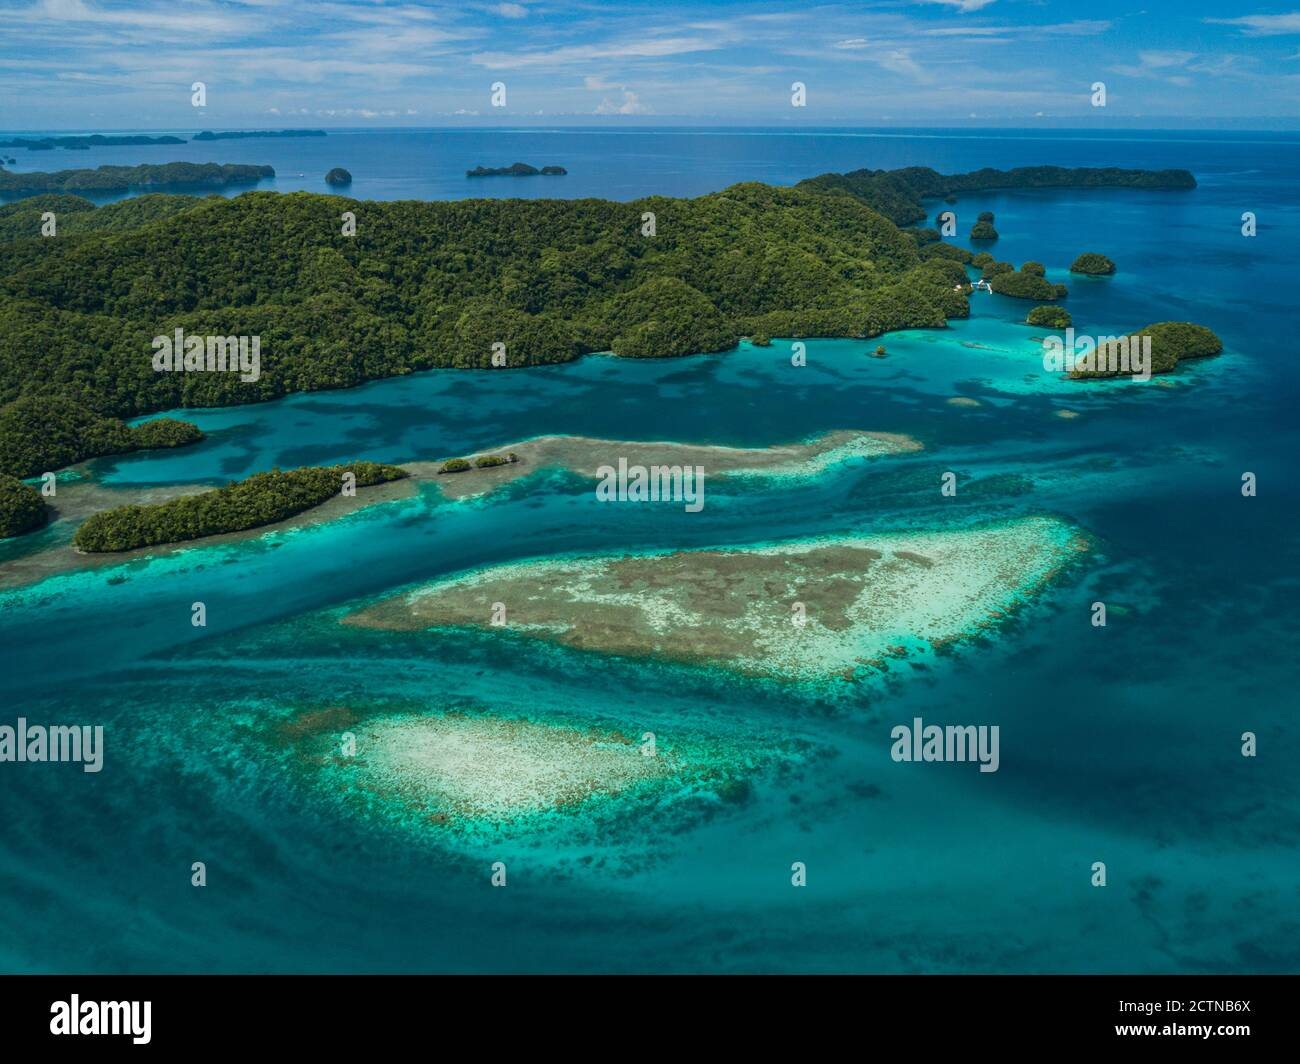 High aerial views of tropical islands and coral reefs in Palau Stock Photo